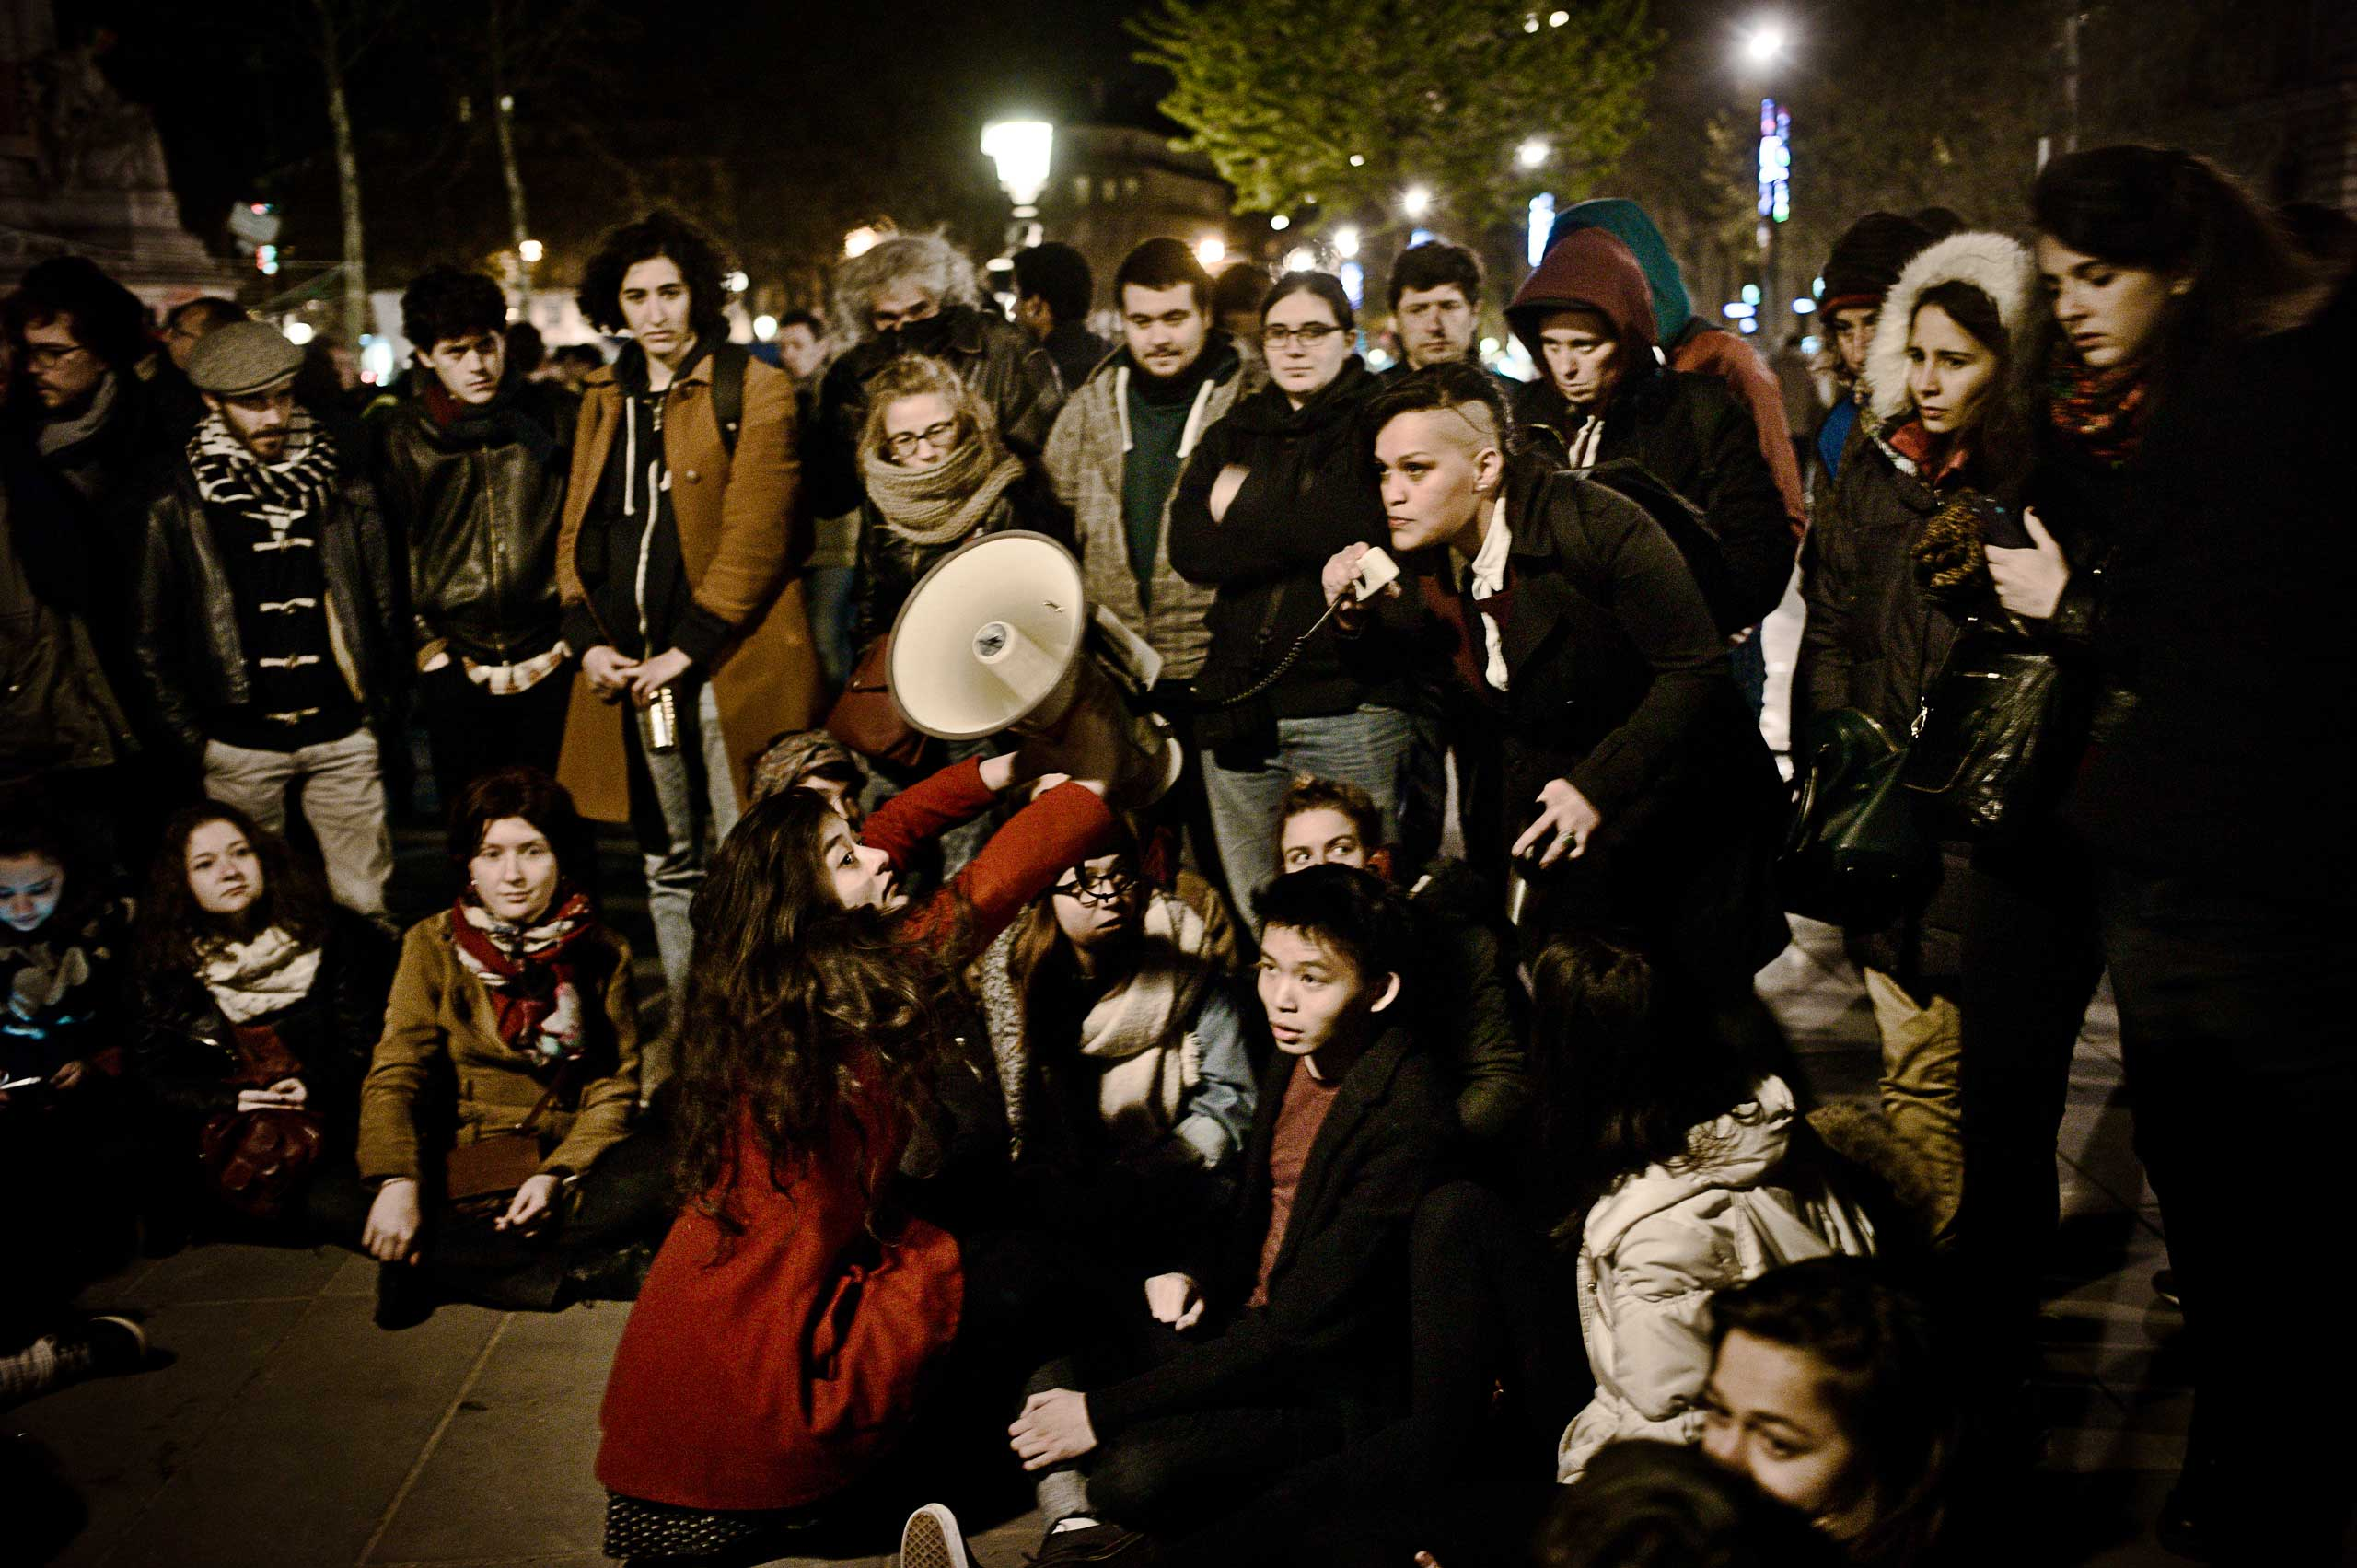 The Commission of LGBT (Lesbian, Gay, Bisexual & Transgender) at the Nuit Debout.